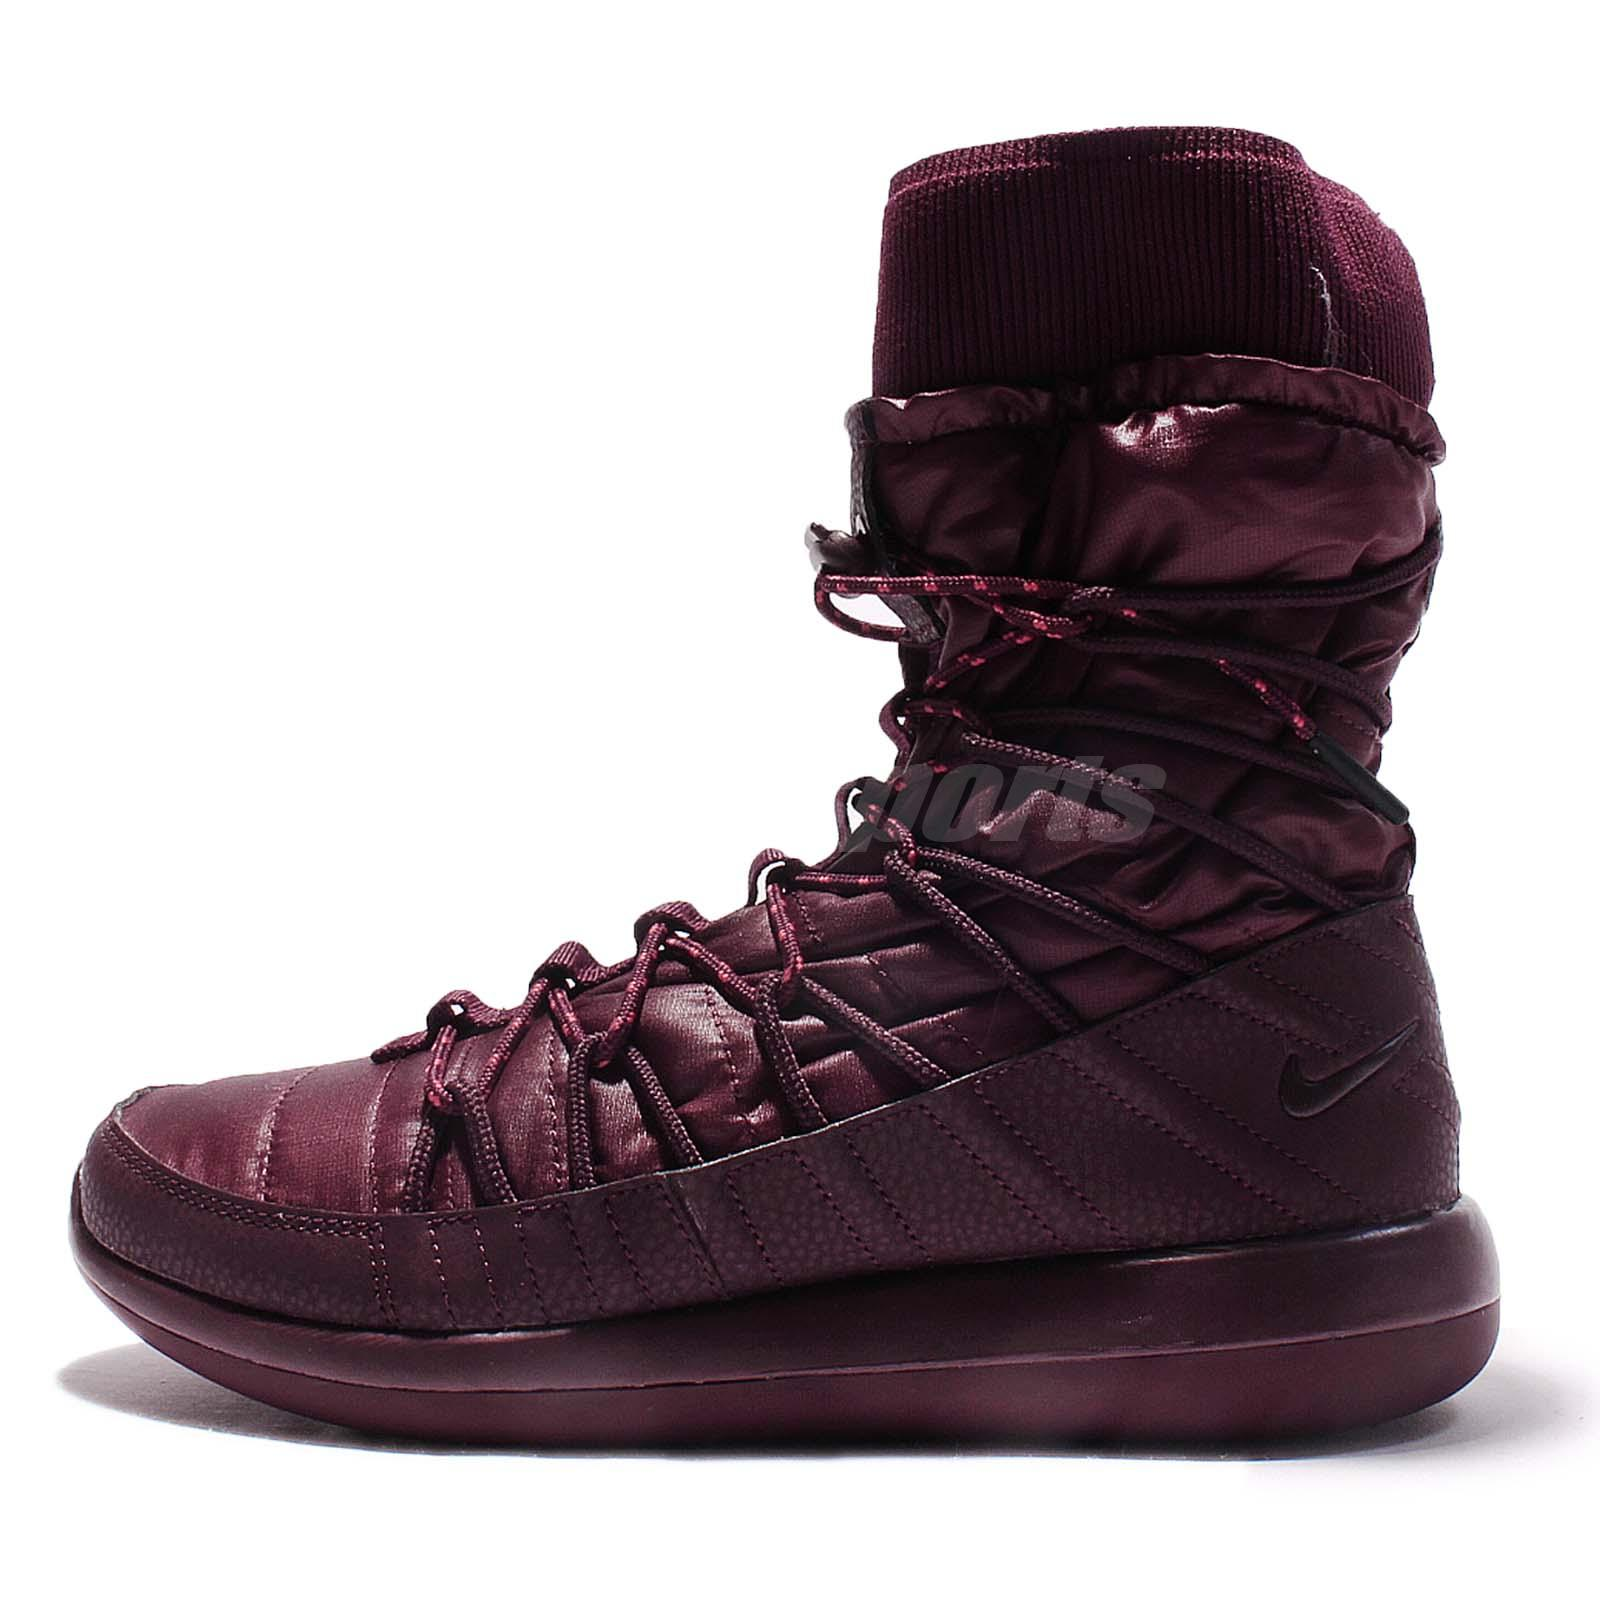 90e37161af656 Wmns Nike Roshe Two Hi 2 Night Maroon Women Sneakerboot Casual Shoes  861707-600 ...